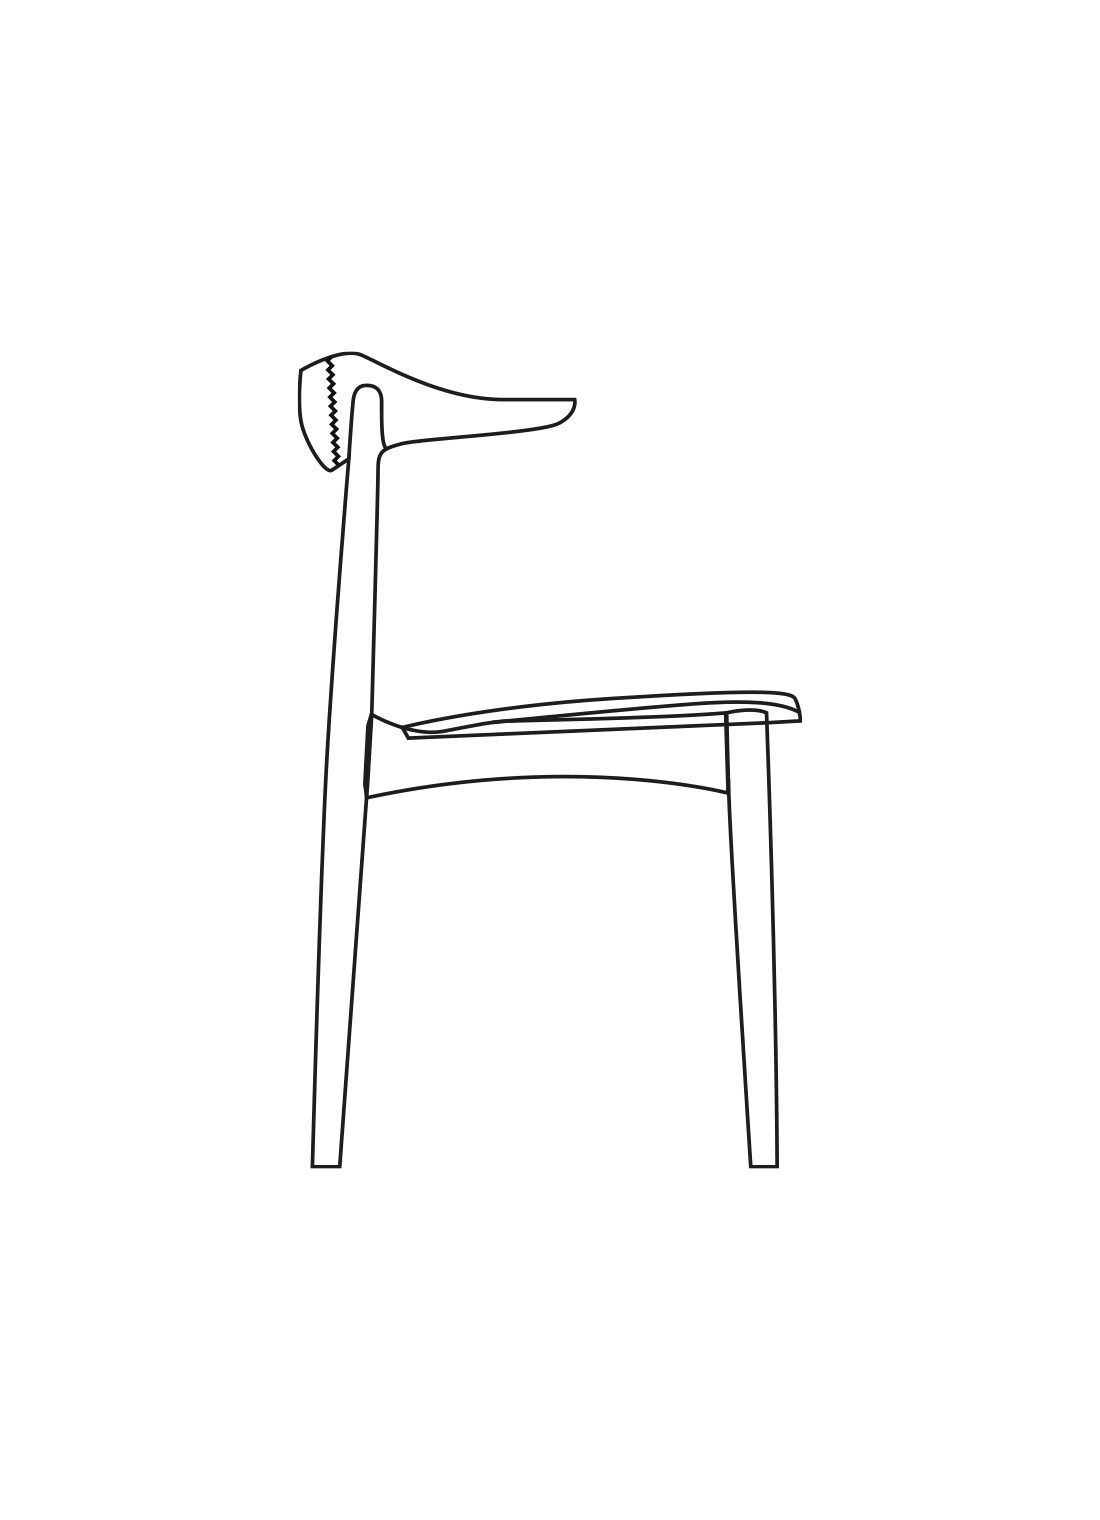 Cow Horn dining chair illustration